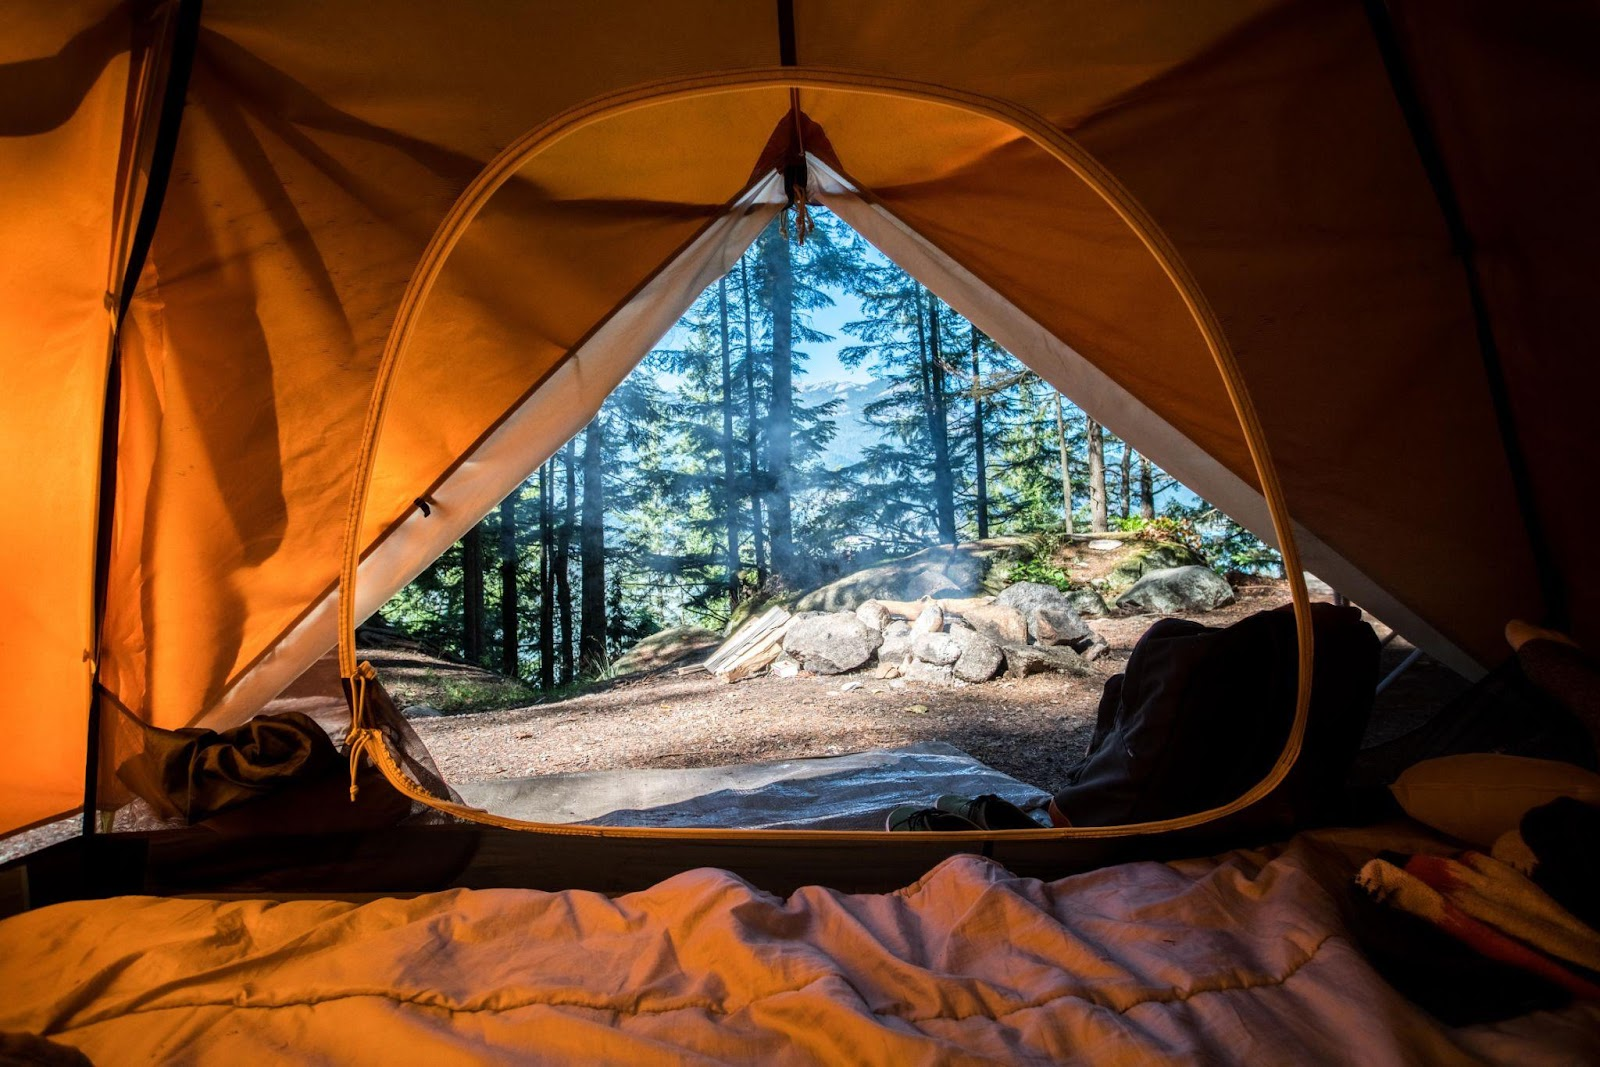 Sunshine Getaway: Enjoying the Outdoors on Another Level